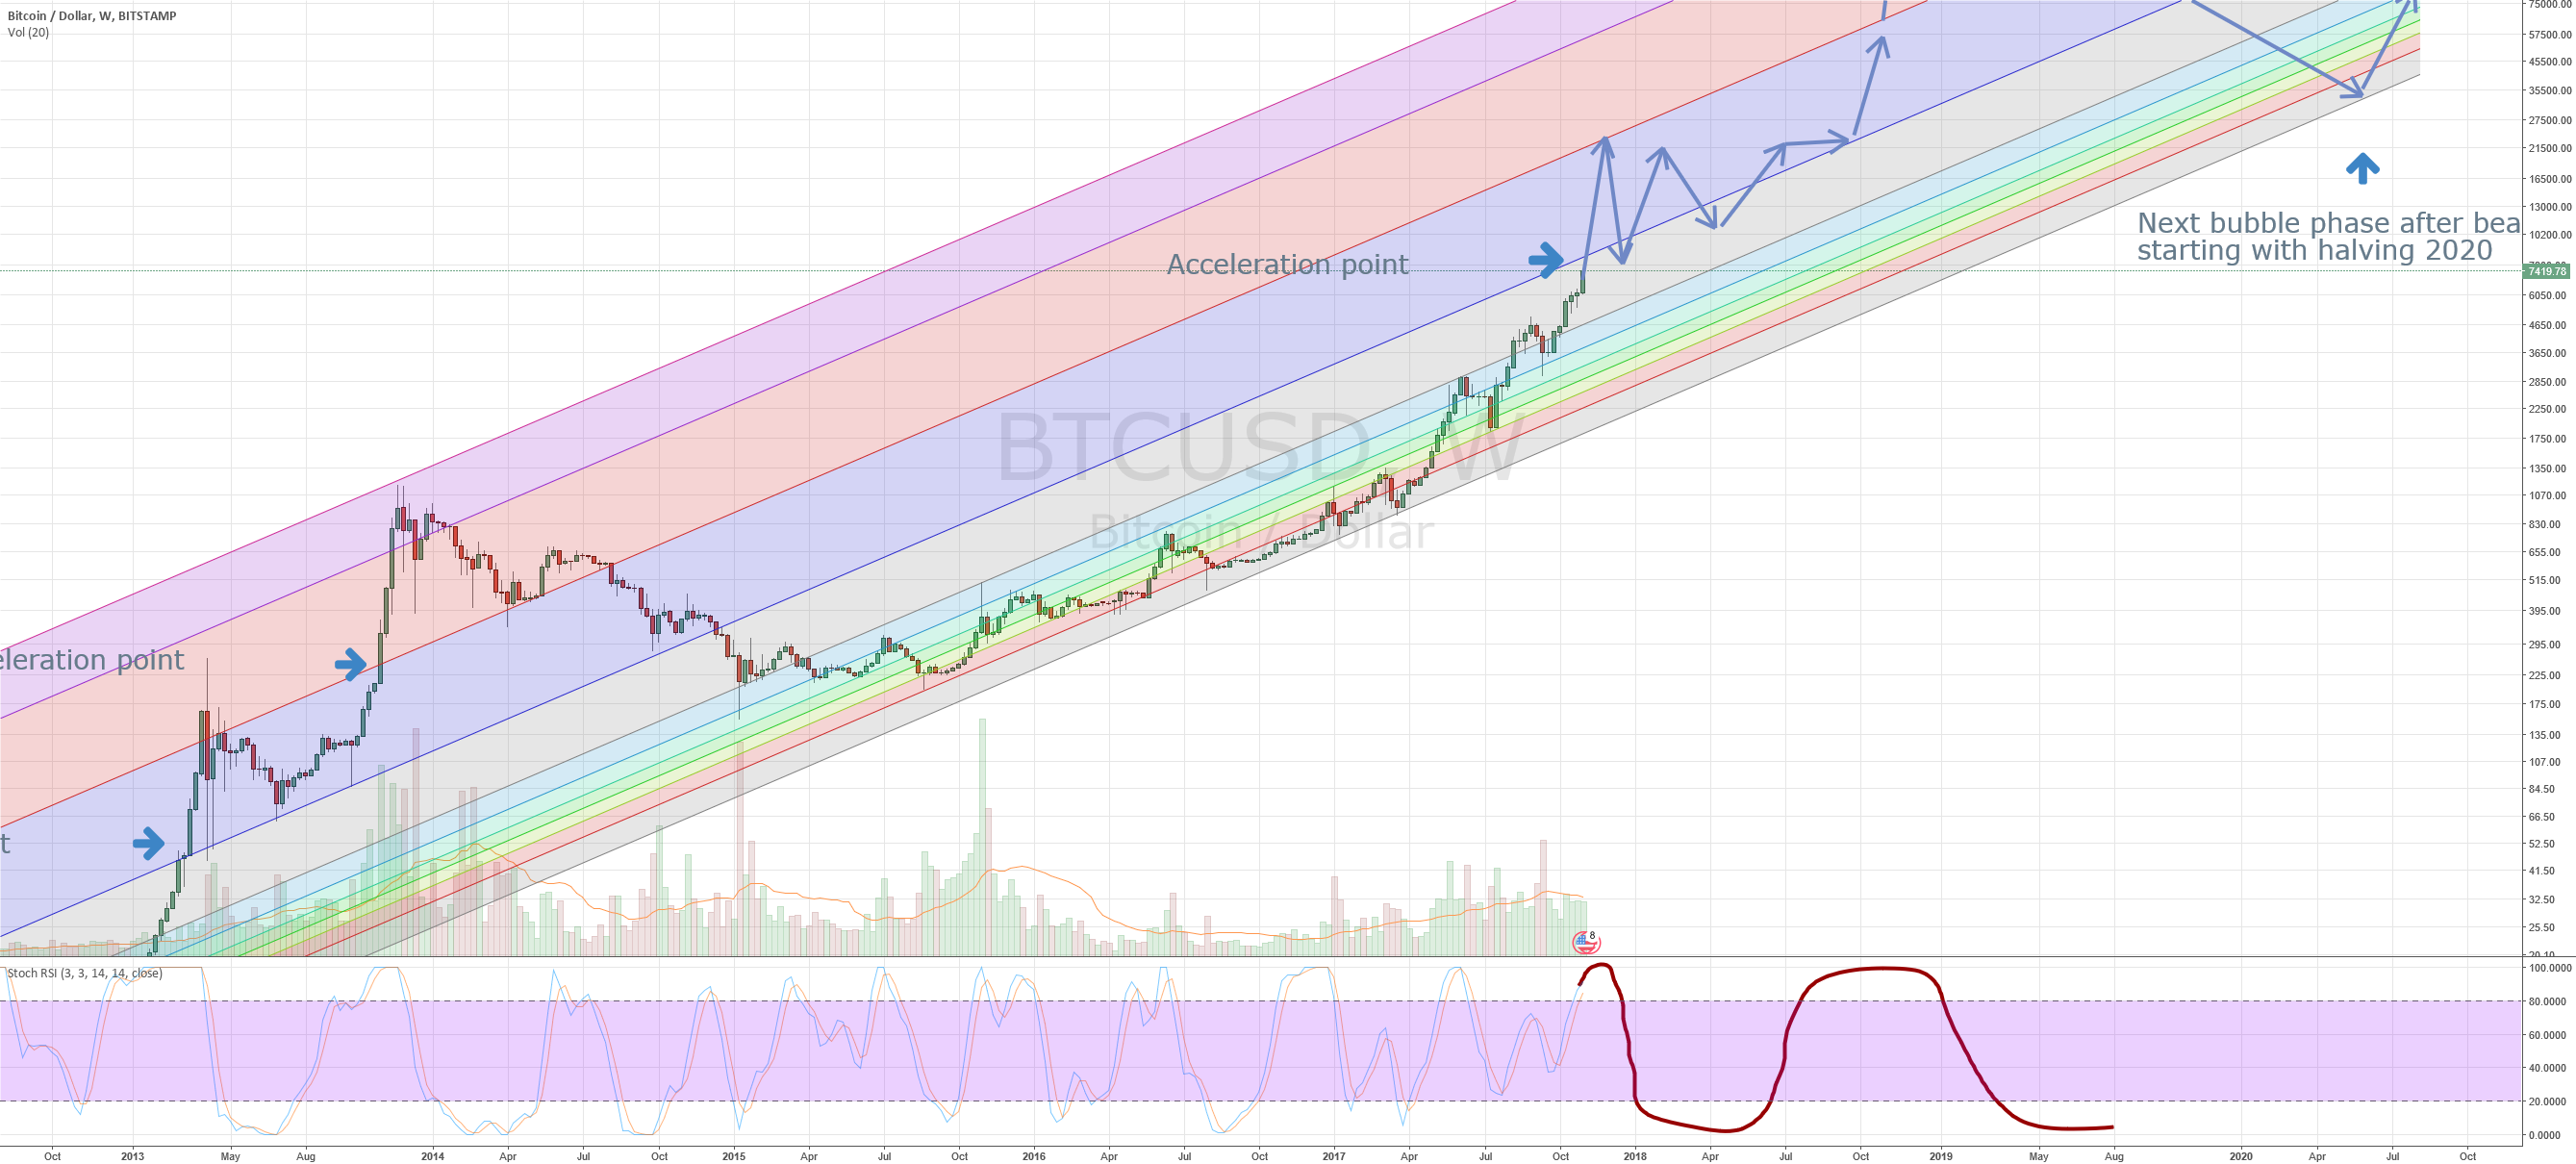 BTC starting to near over-exponential growth phase : buckle up !